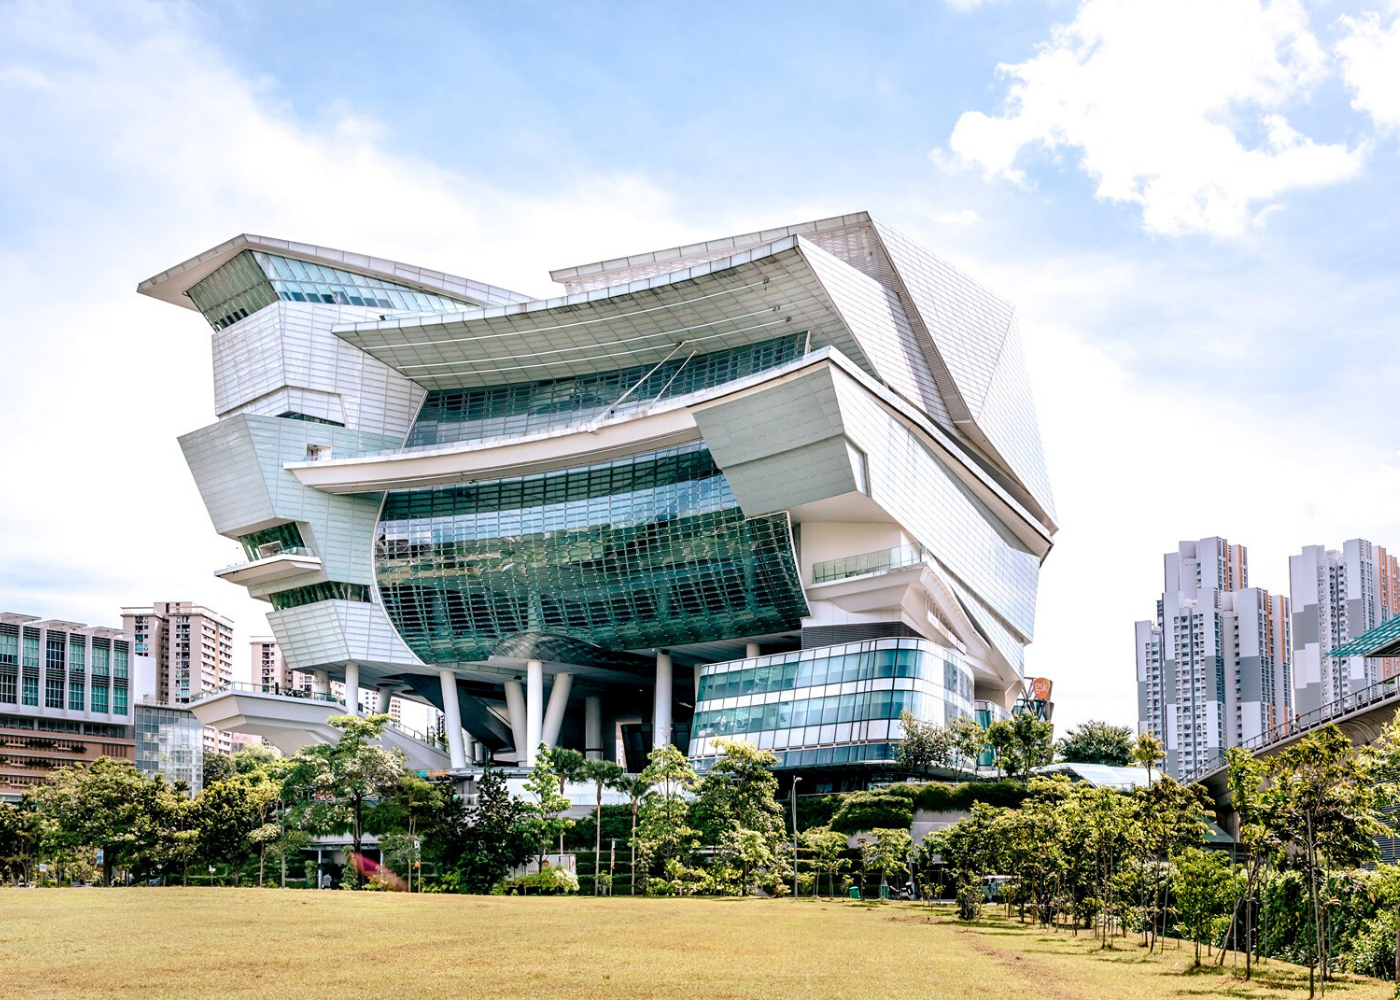 The Star Vista | best shopping malls in Singapore